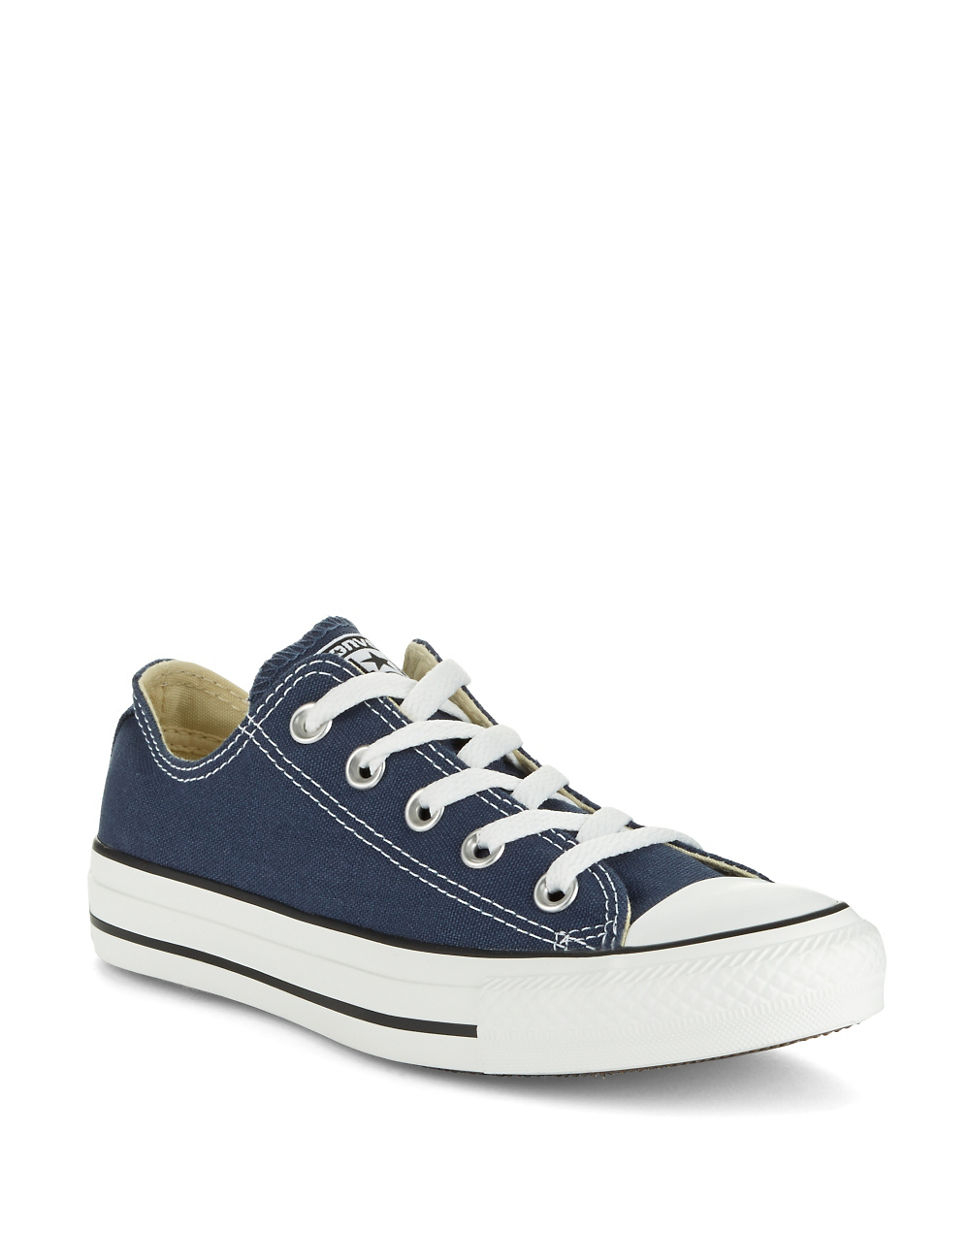 Blue all star converse shoes